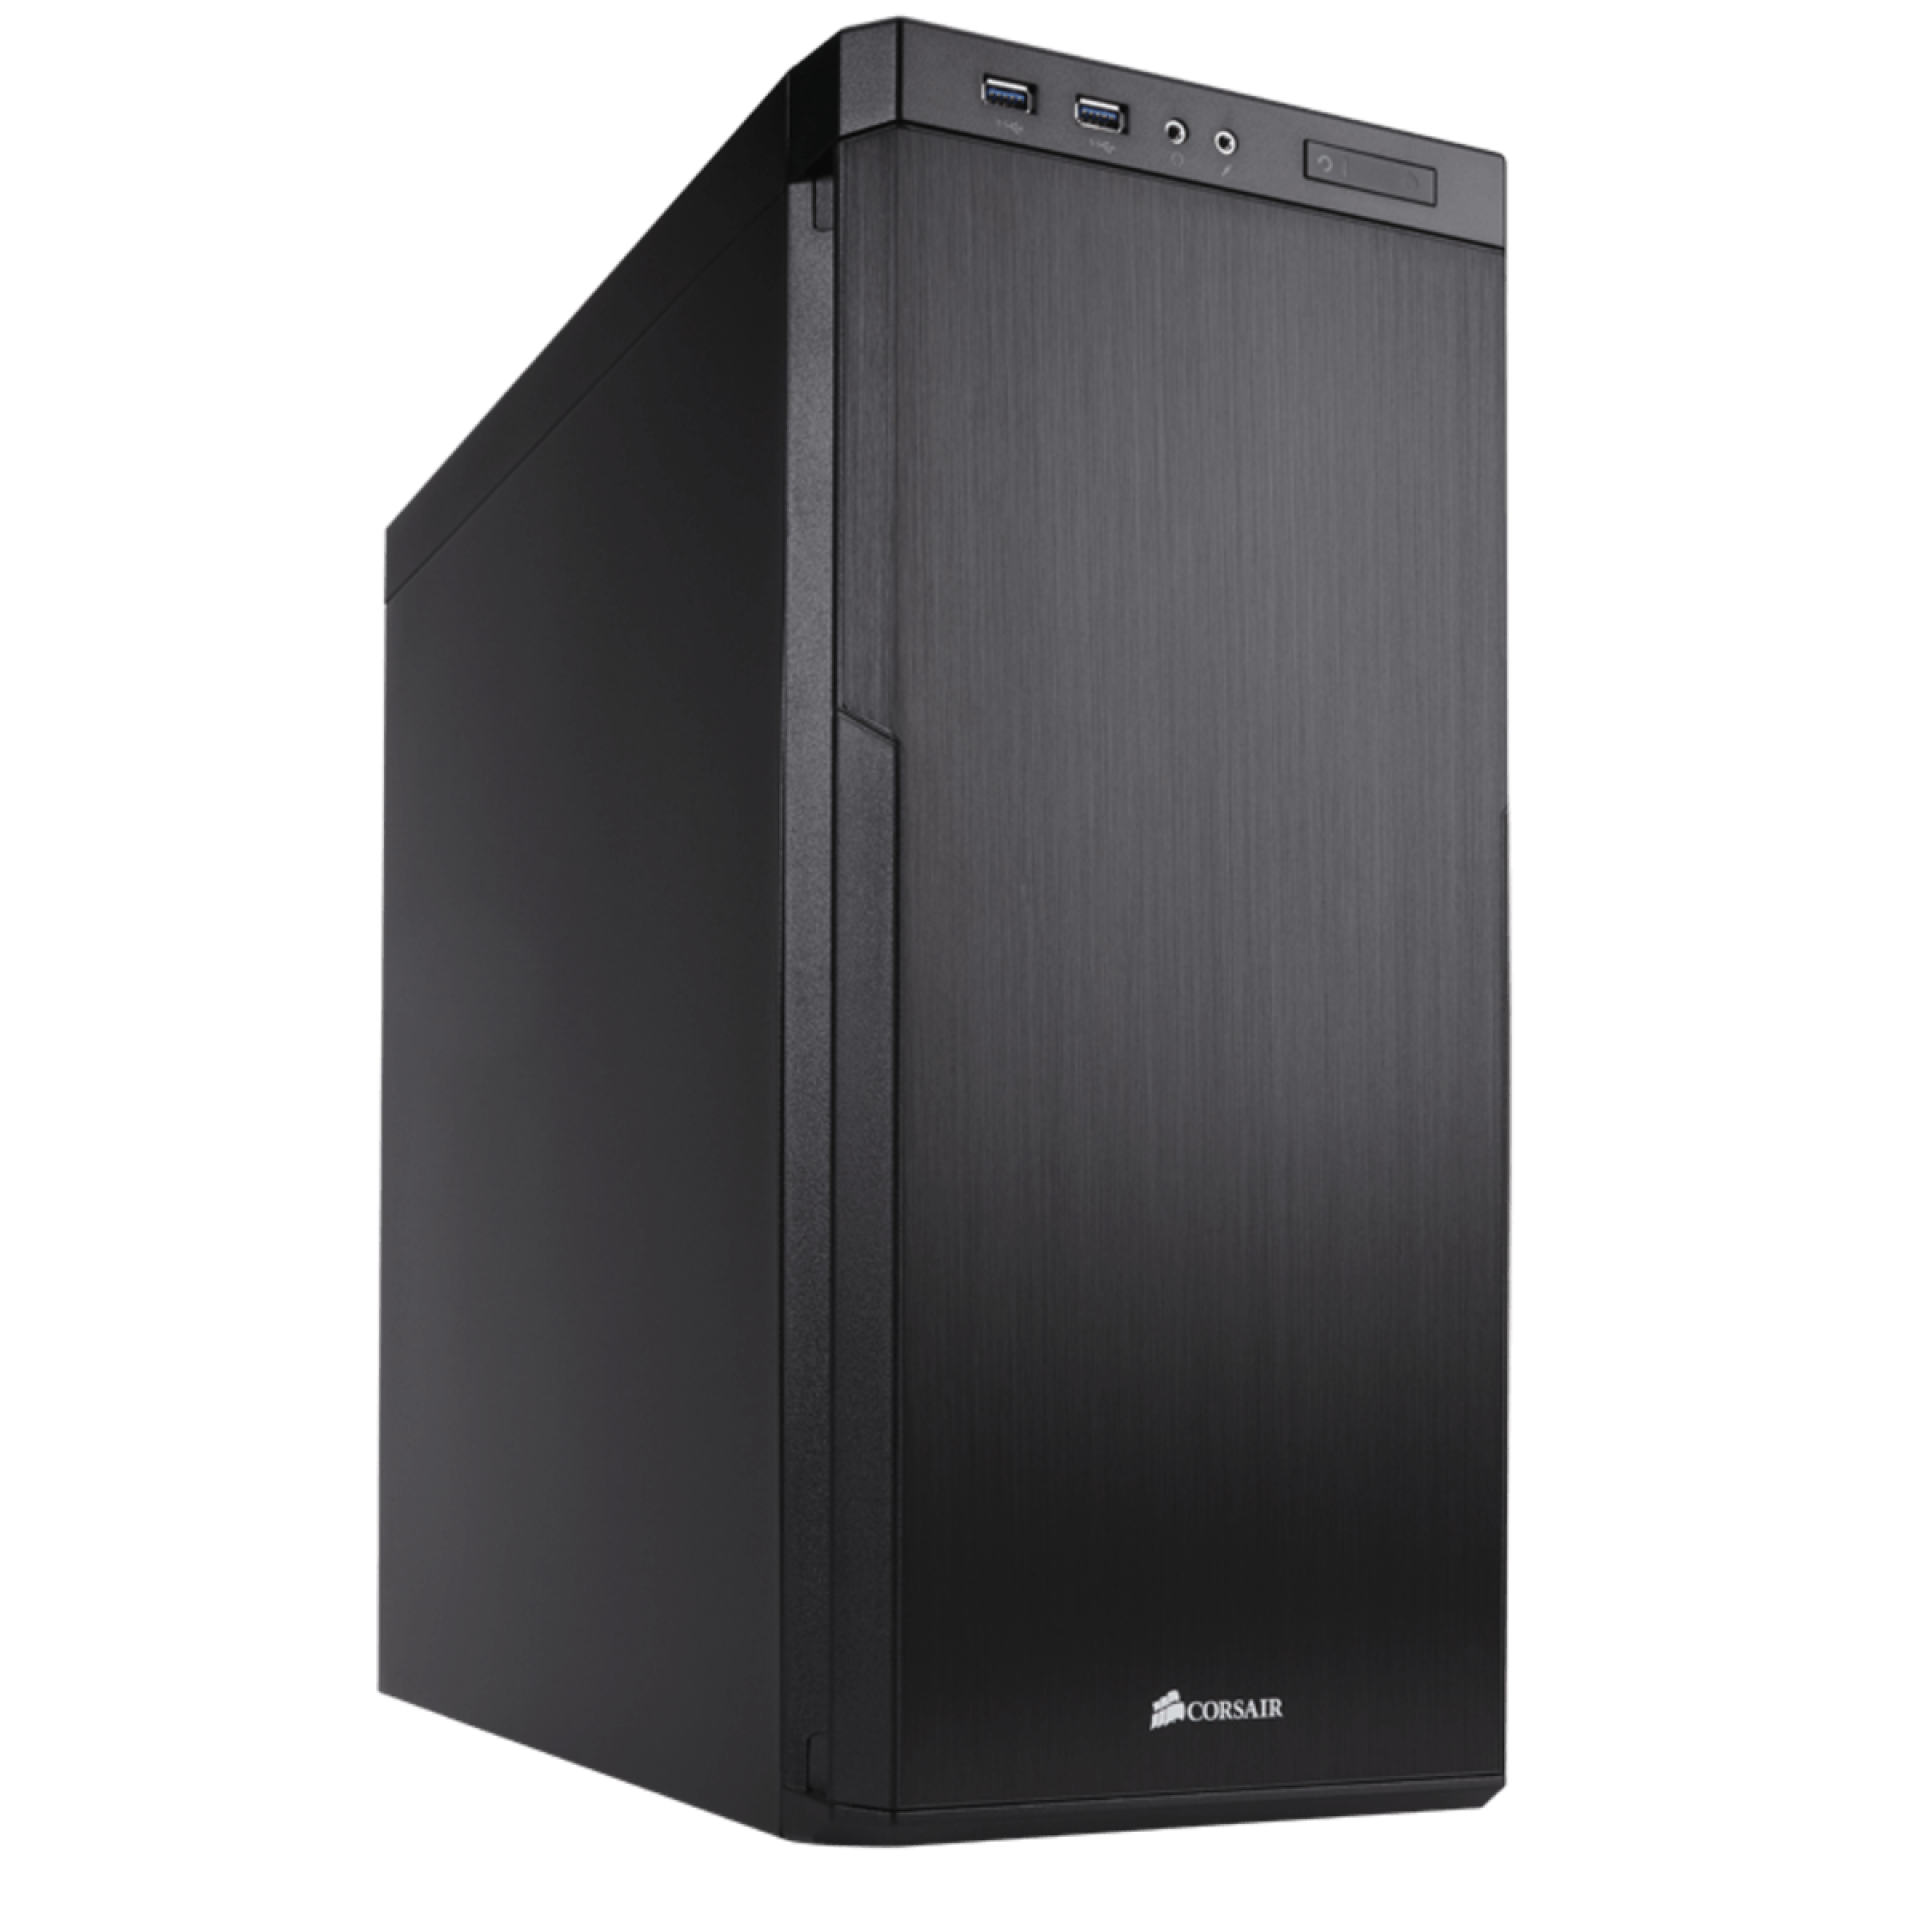 CORSAIR 330R BLACKOUT EDITION